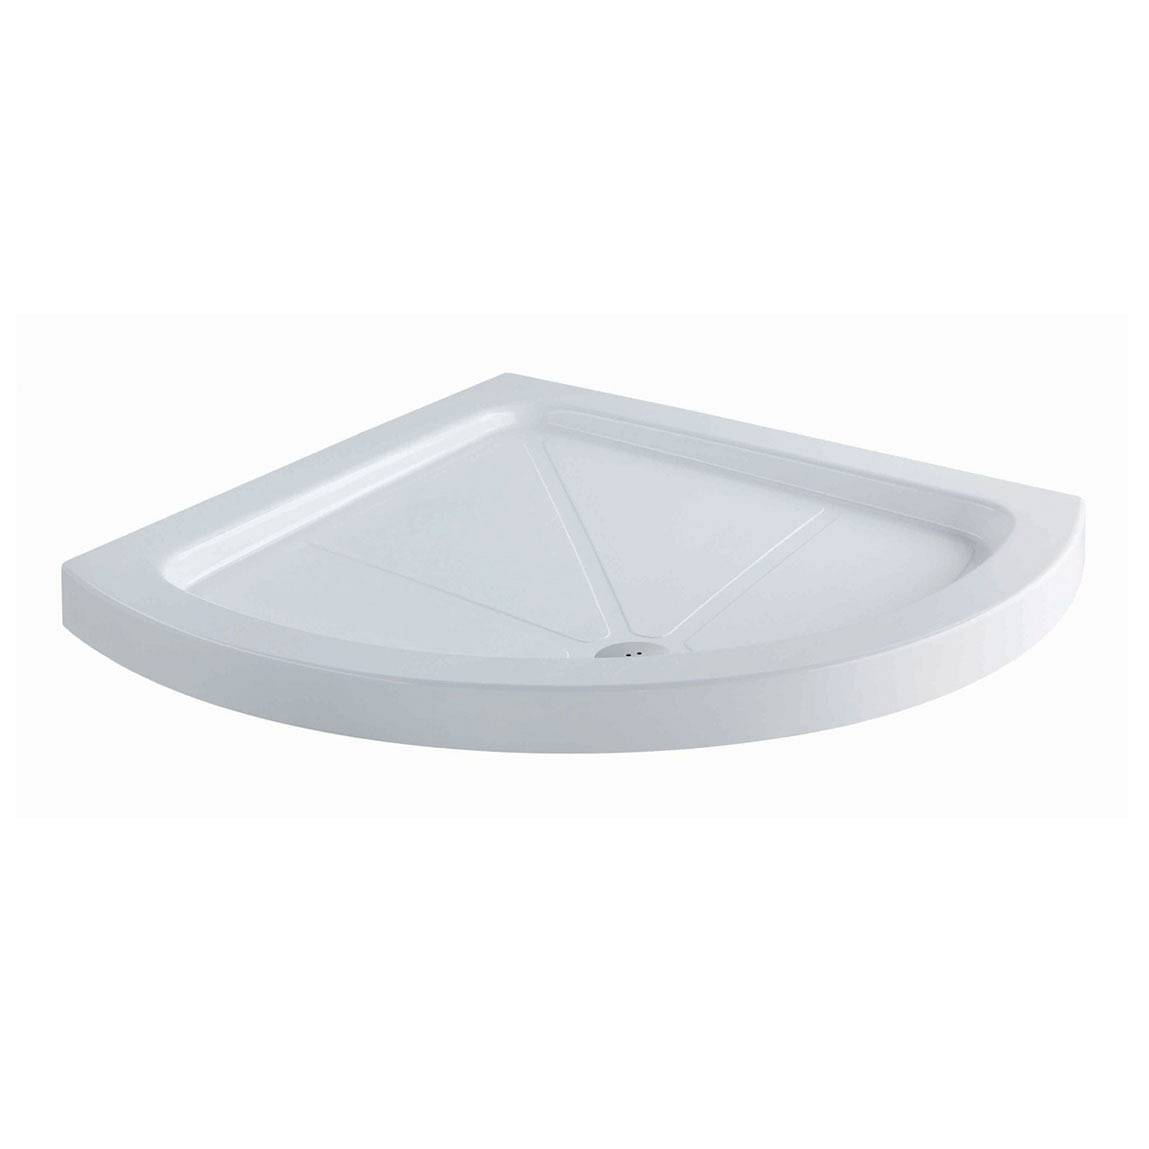 Image of Bow Quadrant Stone Shower Tray 900